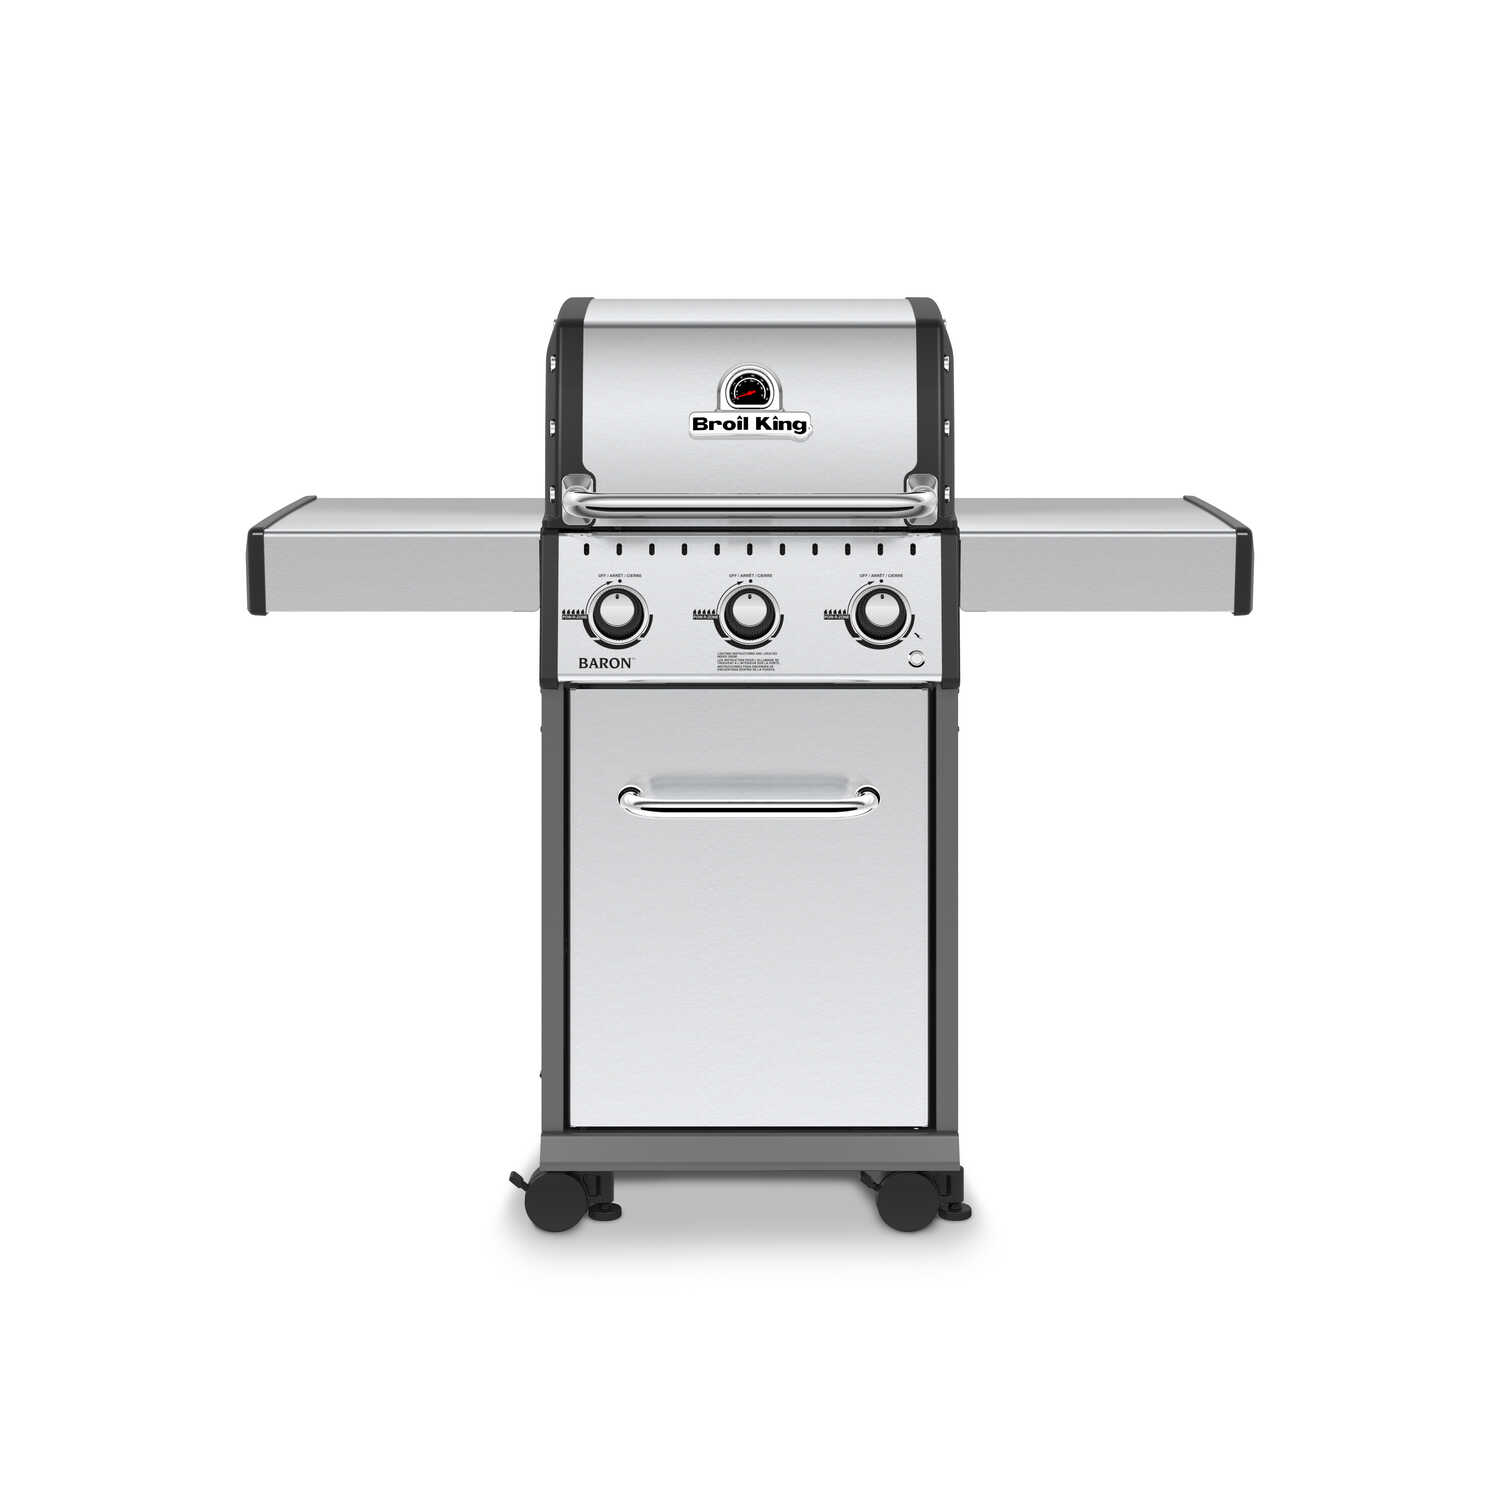 Broil King  Baron S320  3 burners Propane  Grill  Stainless Steel  30000 BTU